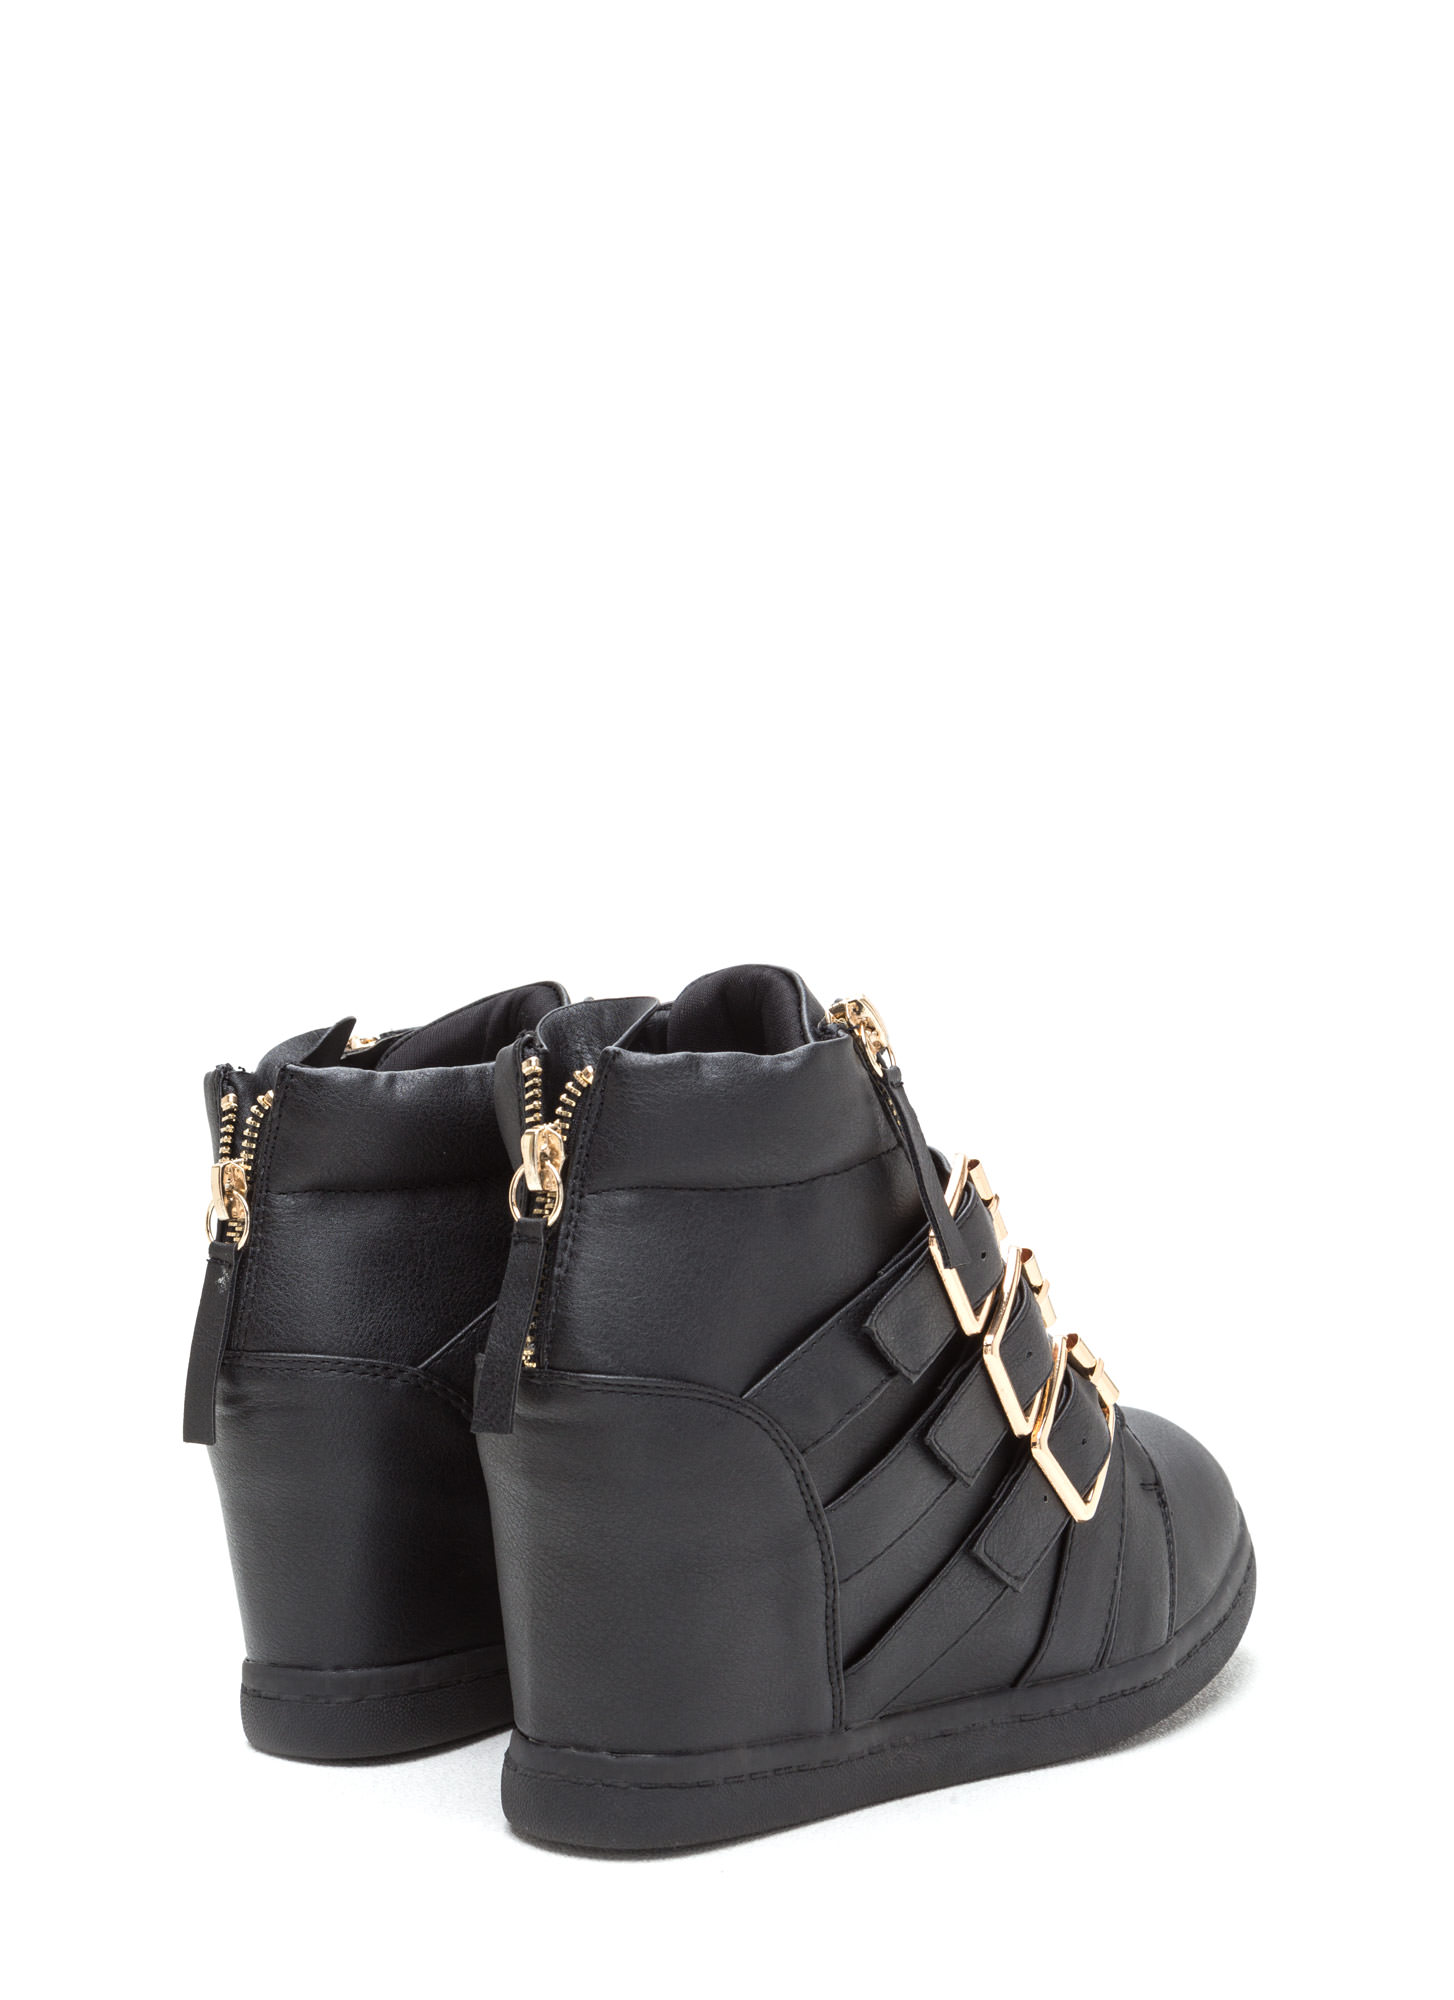 Bold 'N Buckled Sneaker Wedges BLACK